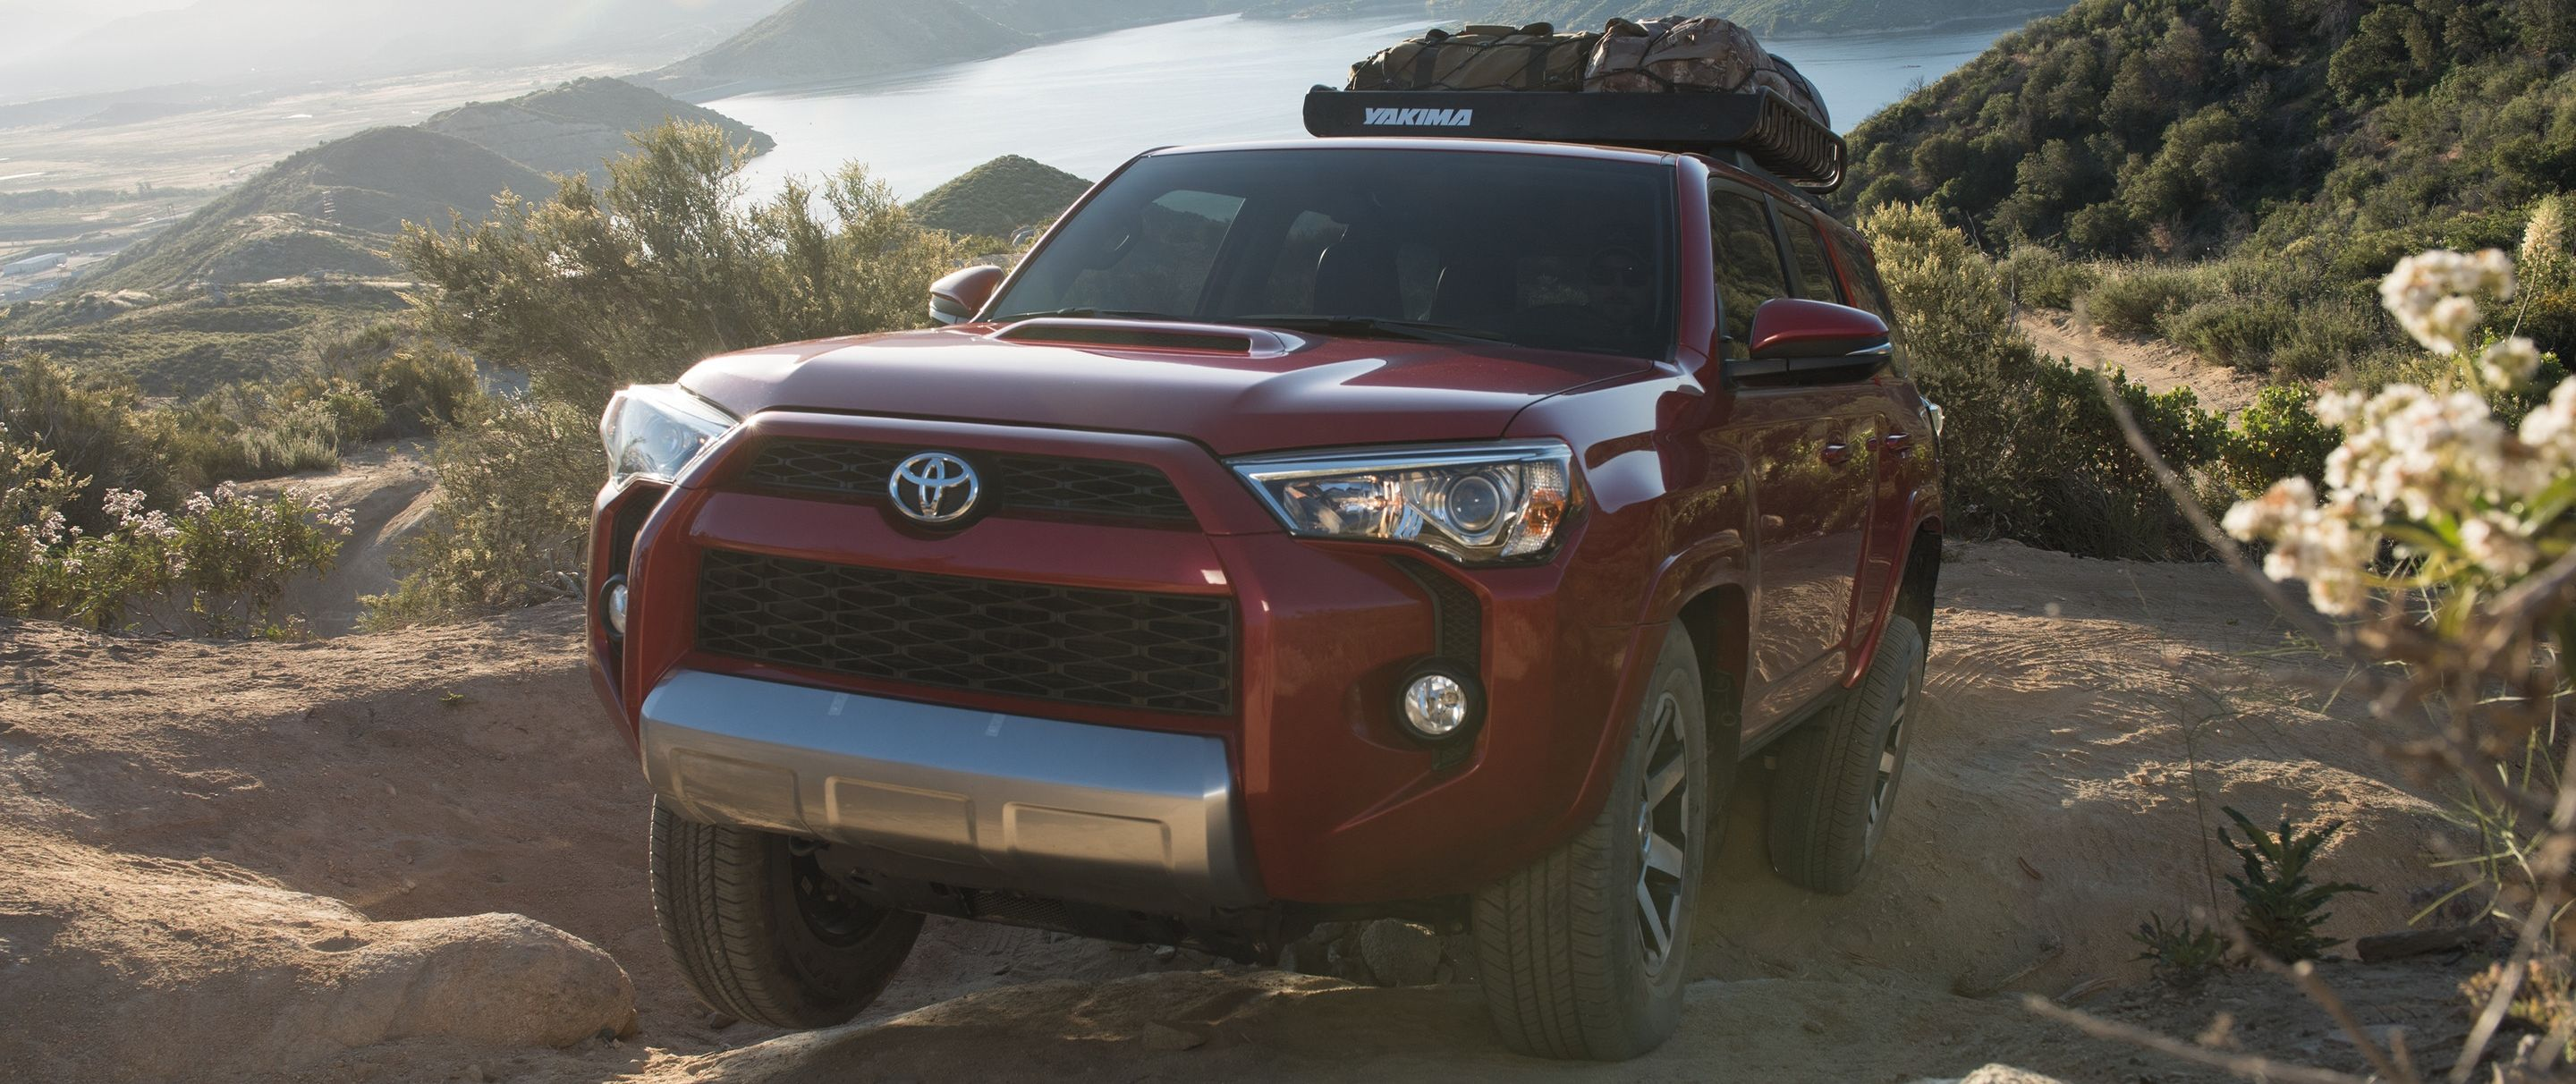 Toyota Four Runner For Sale >> 2019 Toyota 4runner For Sale Near Des Moines Ia Toyota Of Des Moines